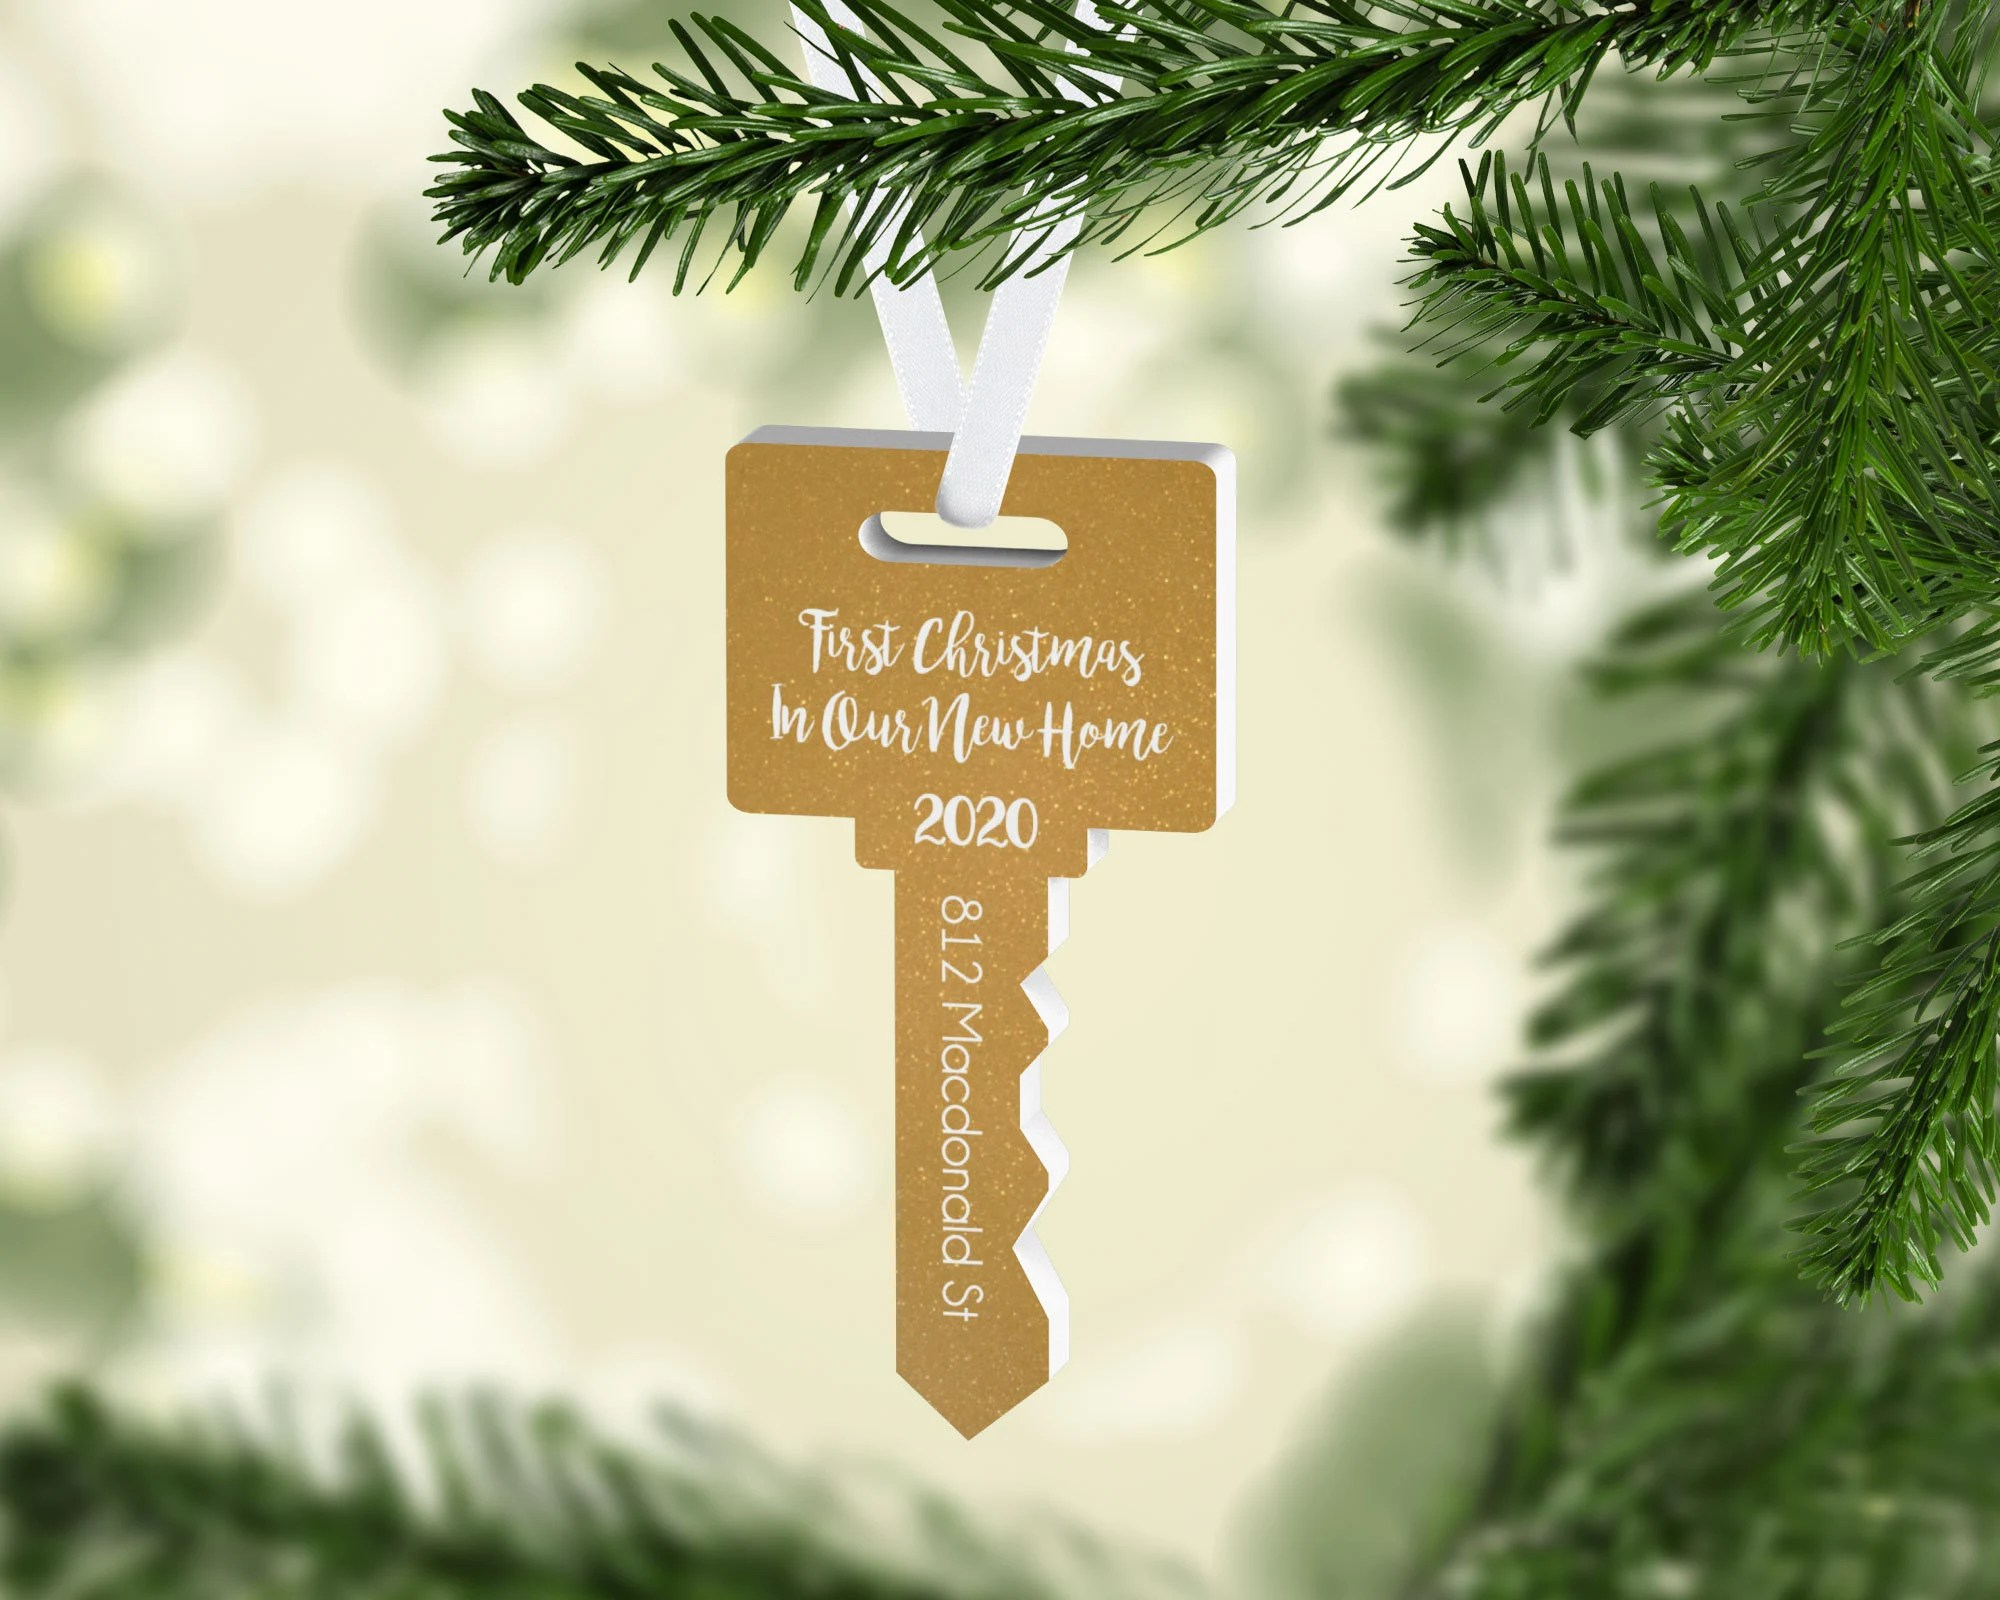 New Home Christmas Ornament Personalized Ornament Key Shape image 1